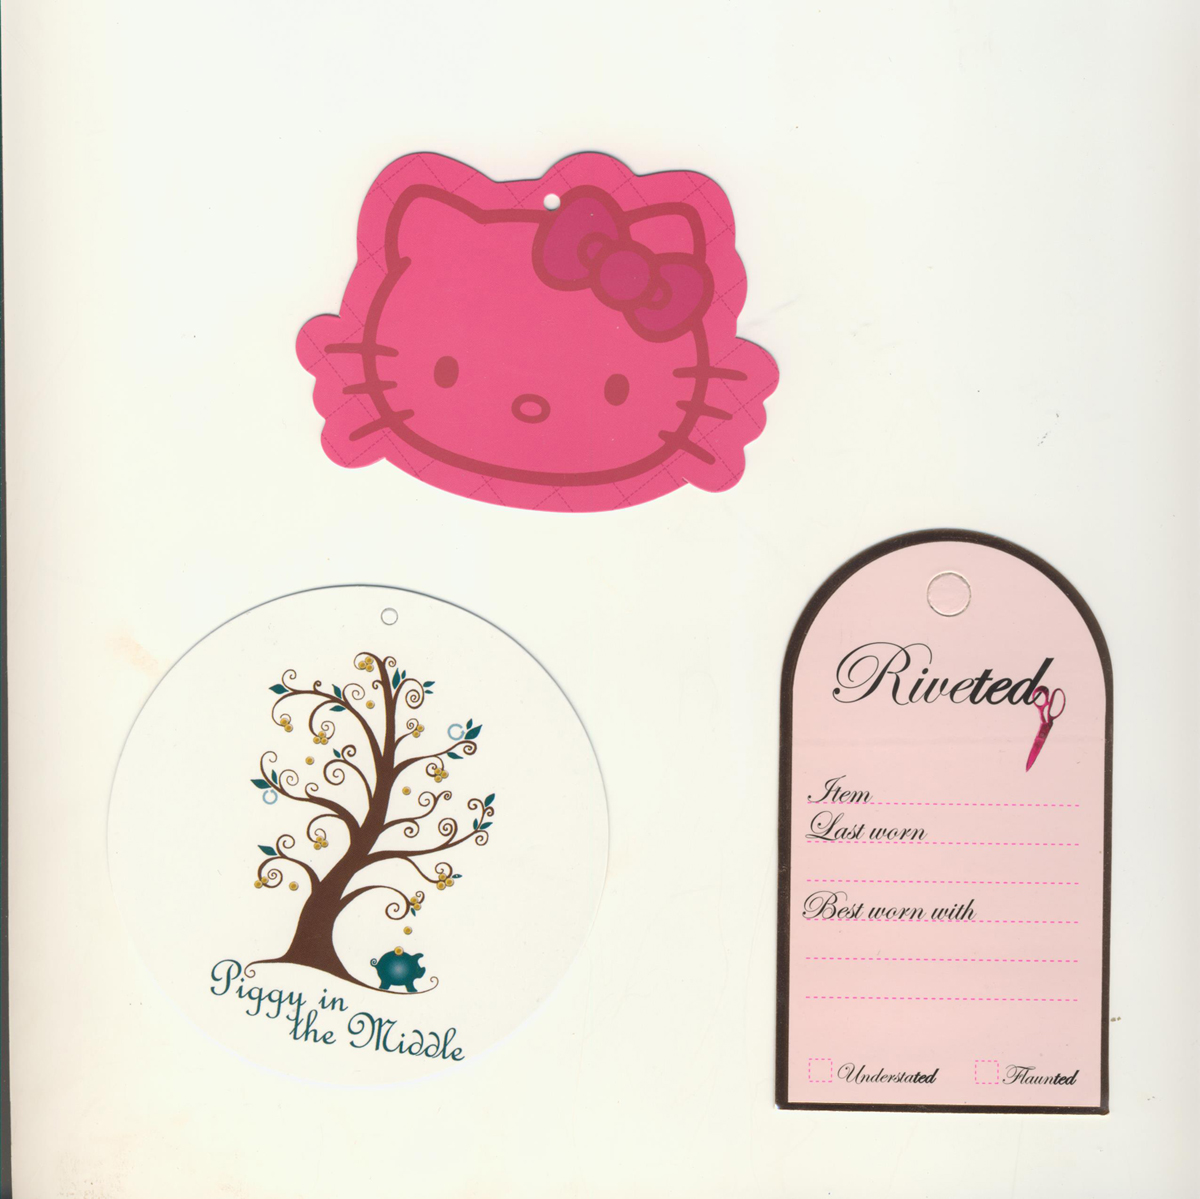 Custom Printed Hangtags Die Cut to different shapes